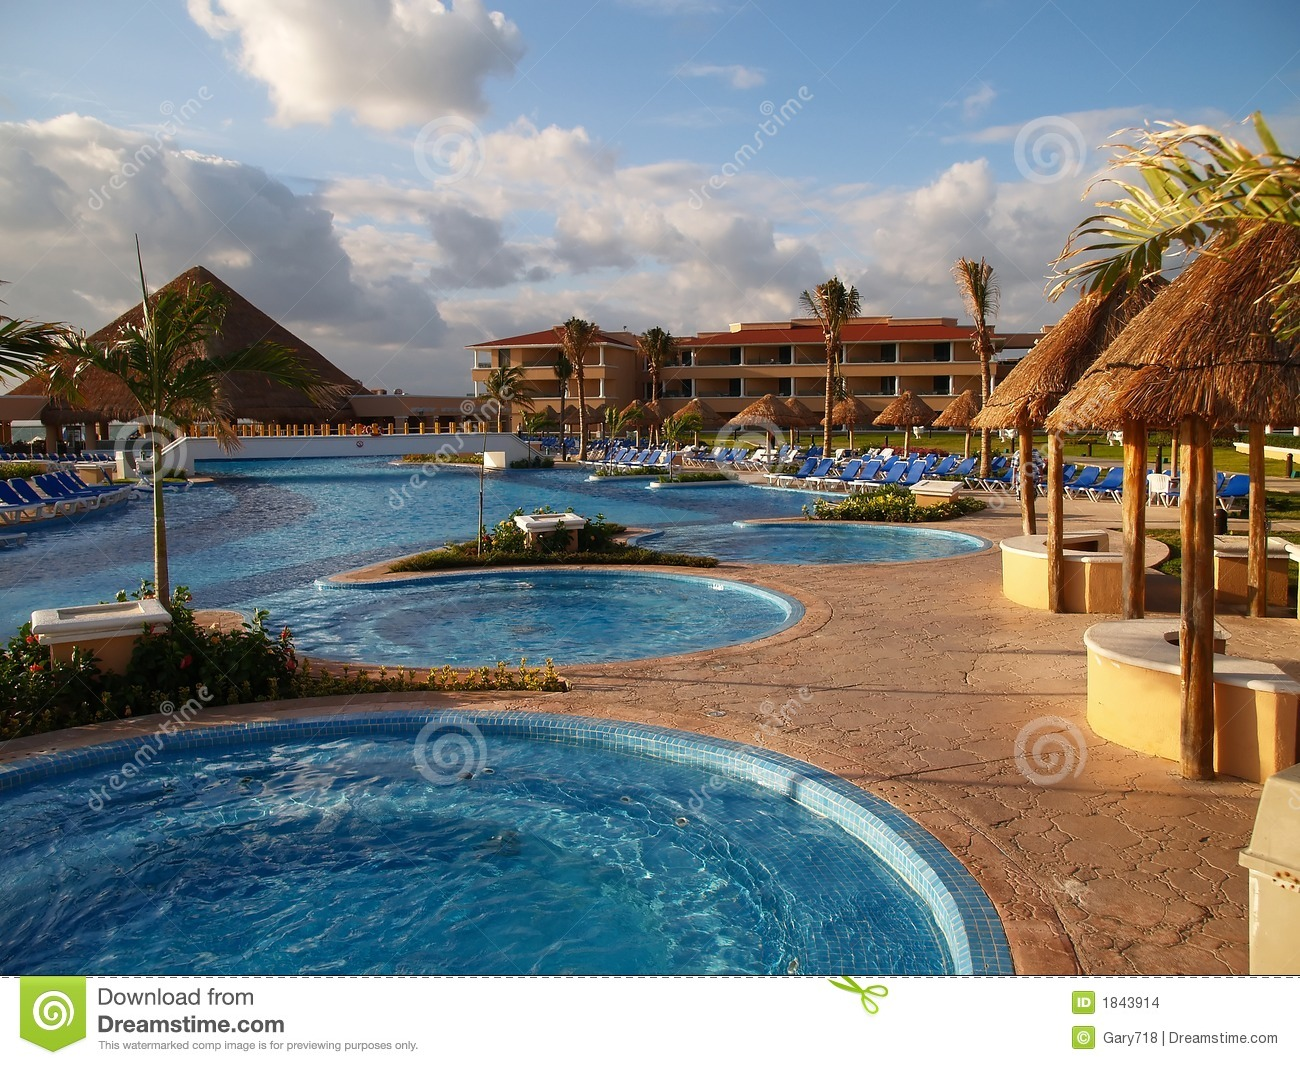 A beach resort in Cancun